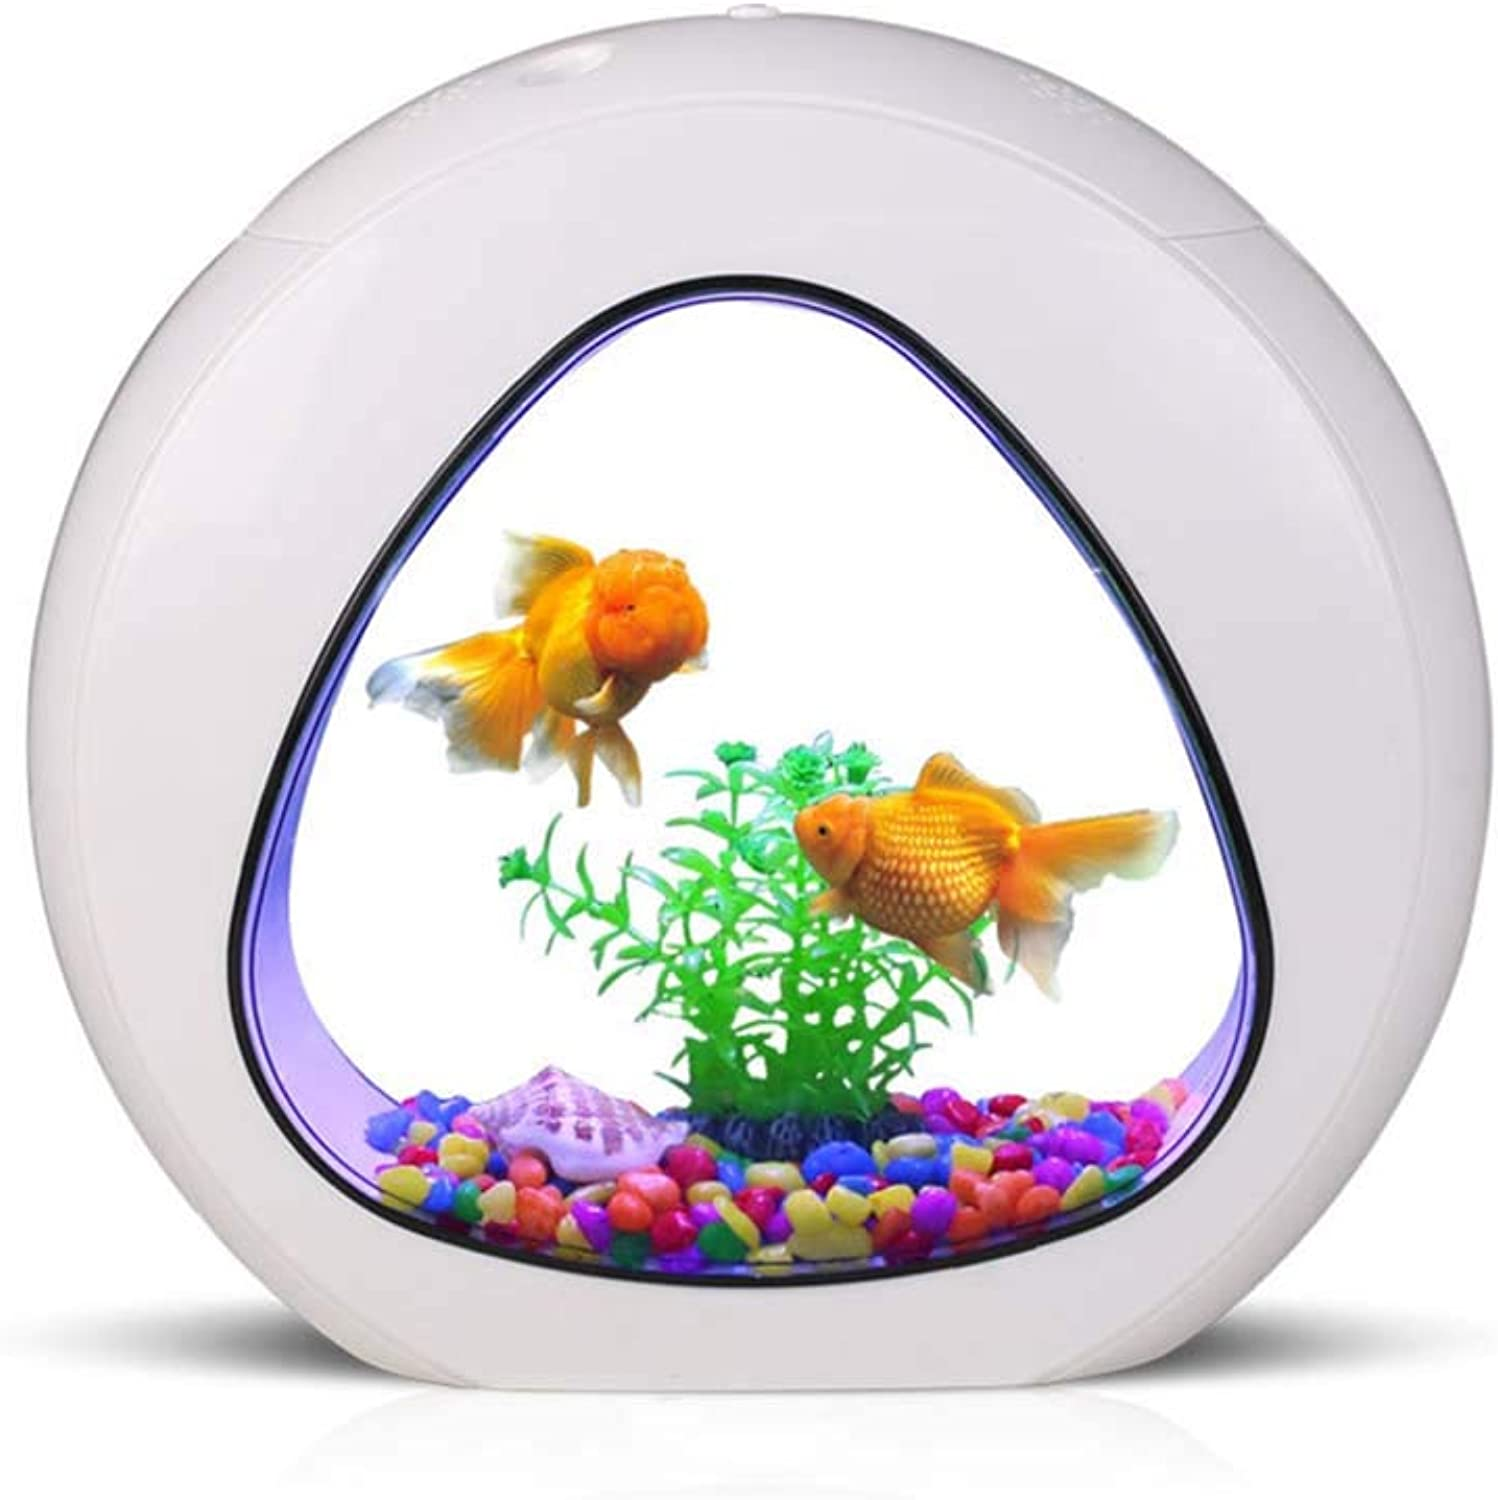 DJLOOKK Aquarium Fish Tank Aquarium Acrylic Aquarium Creative Desktop Ecological Aquarium Small Ornamental goldfish Tank Suitable For Small Fish Farming